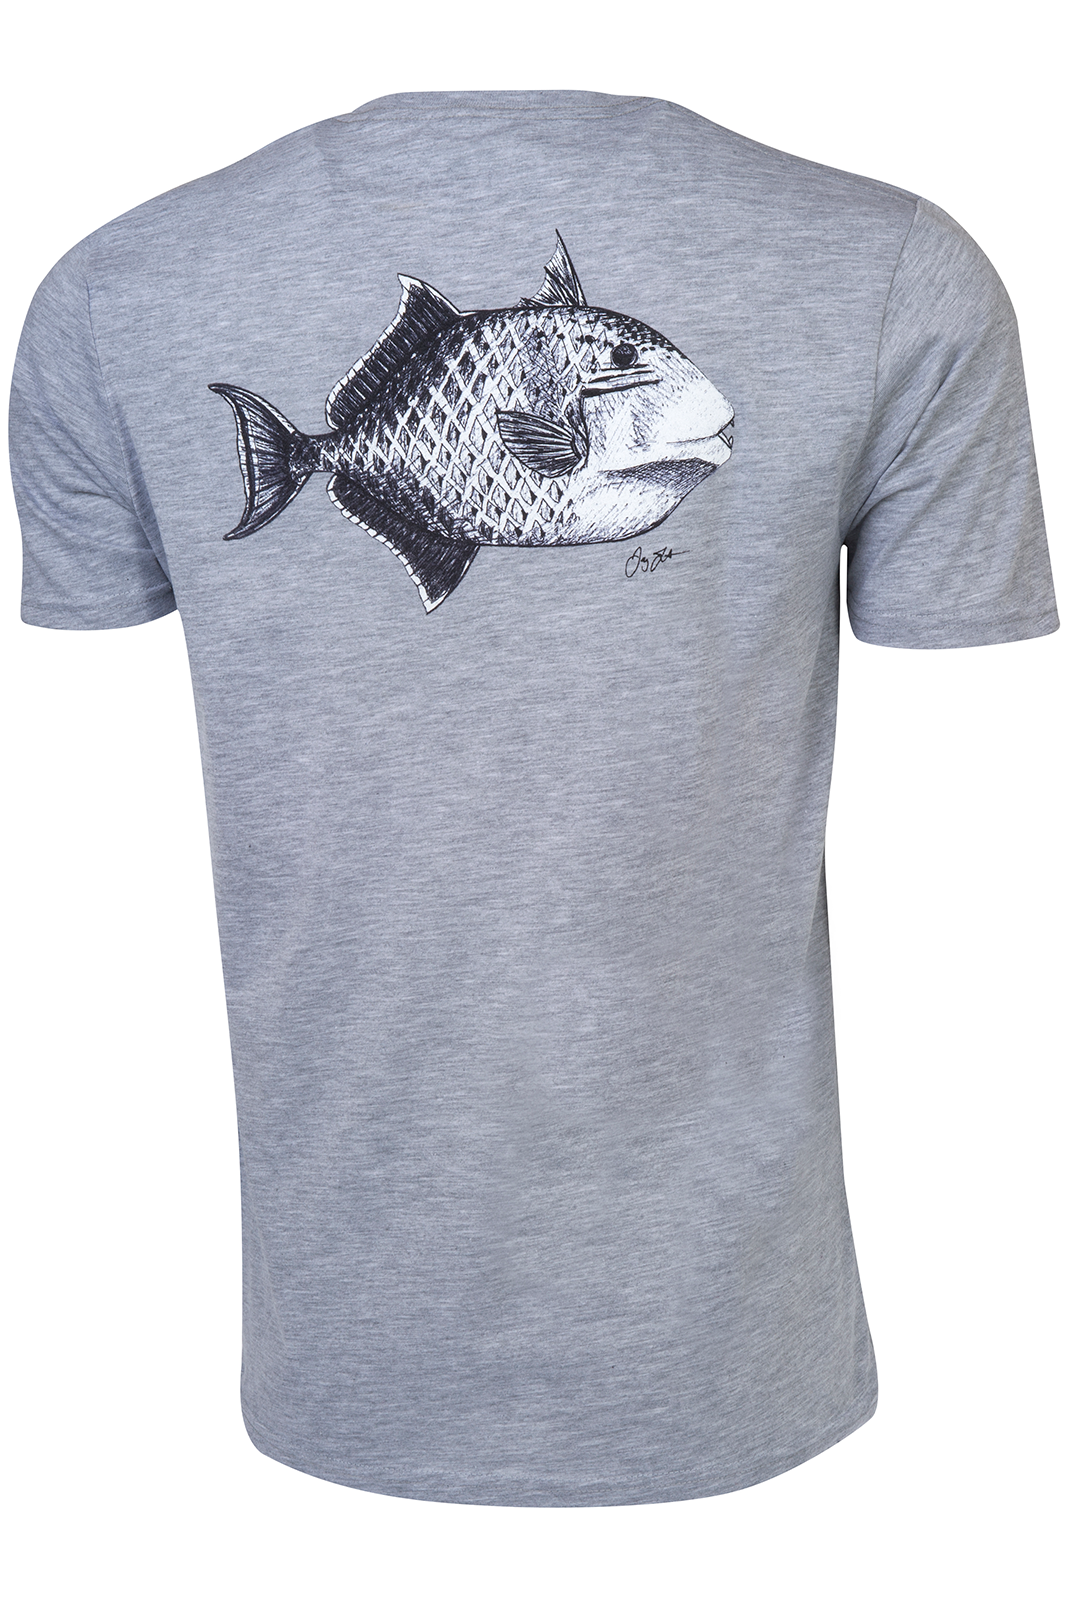 Yellowmargin Triggerfish T-Shirt - Gray